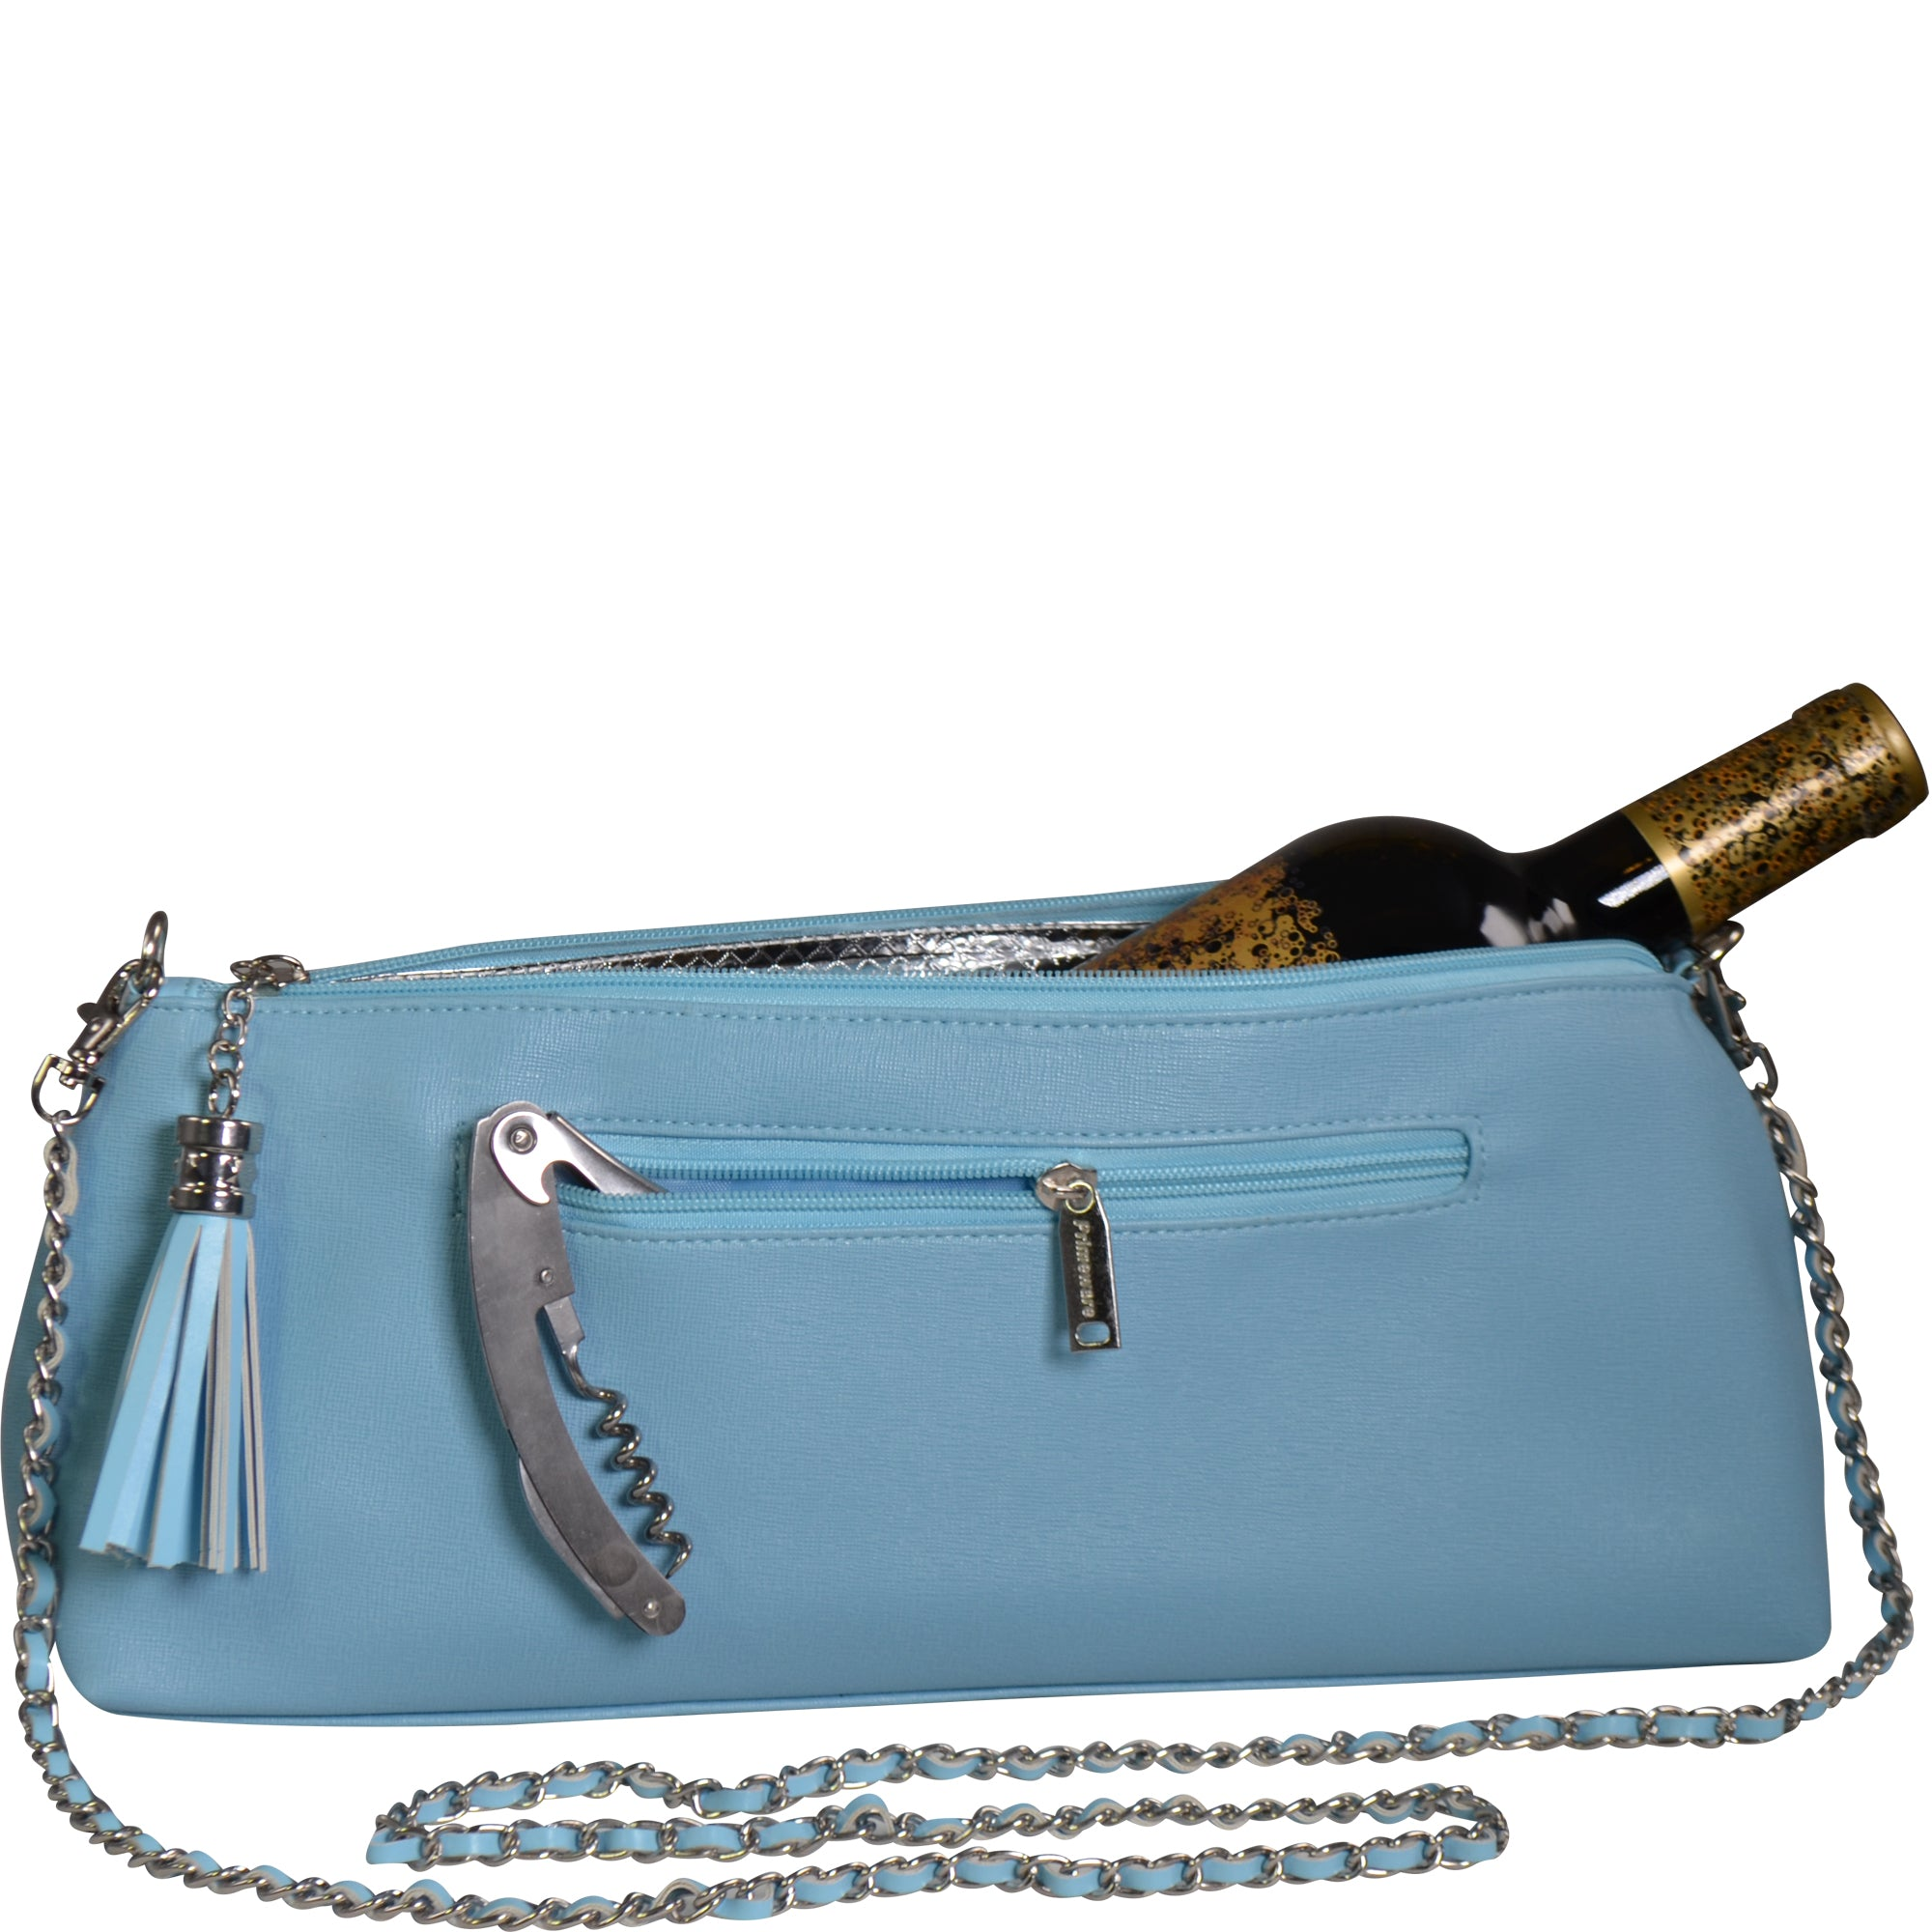 Wine Purse GGW Cross Body Design - primewareinc